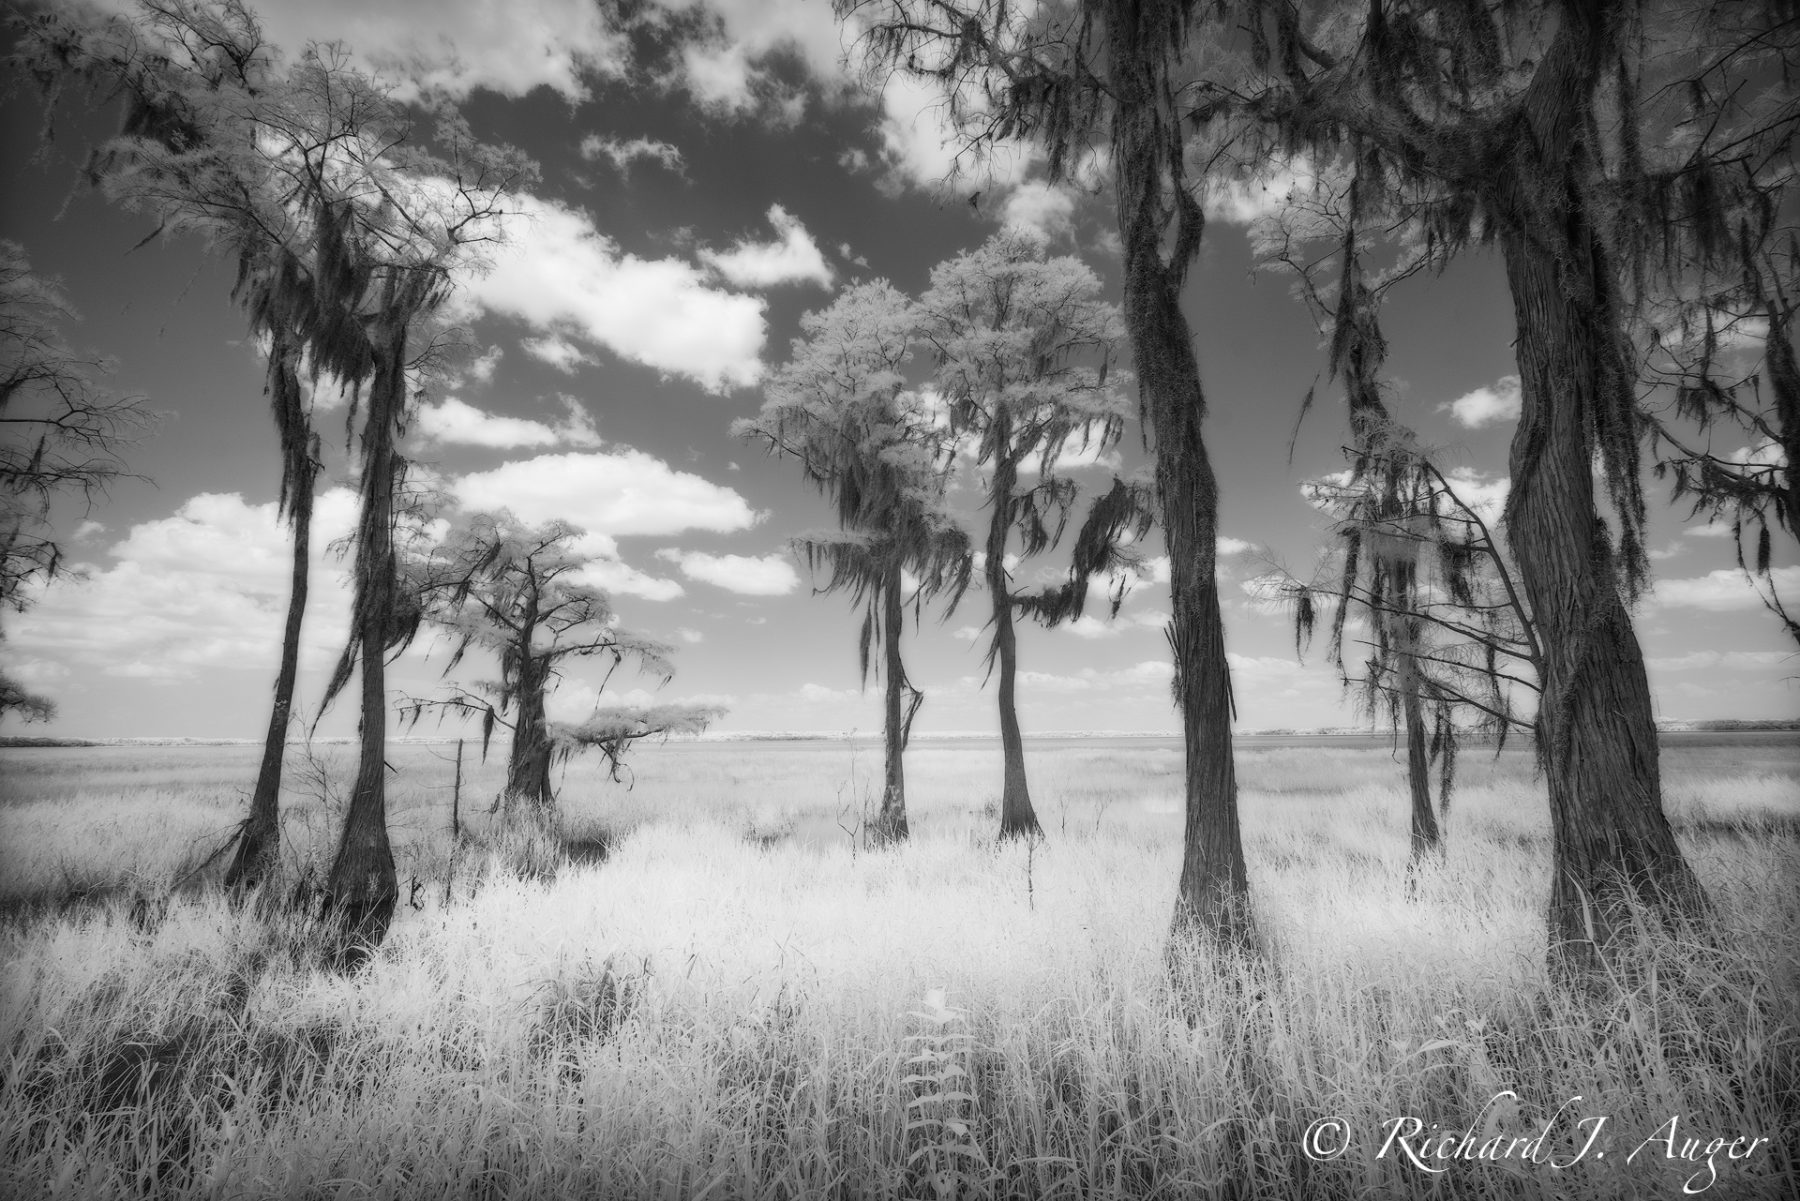 Lake Louisa State Park, Florida, black and white, monochrom, photograph, landscape, nature, cypress trees